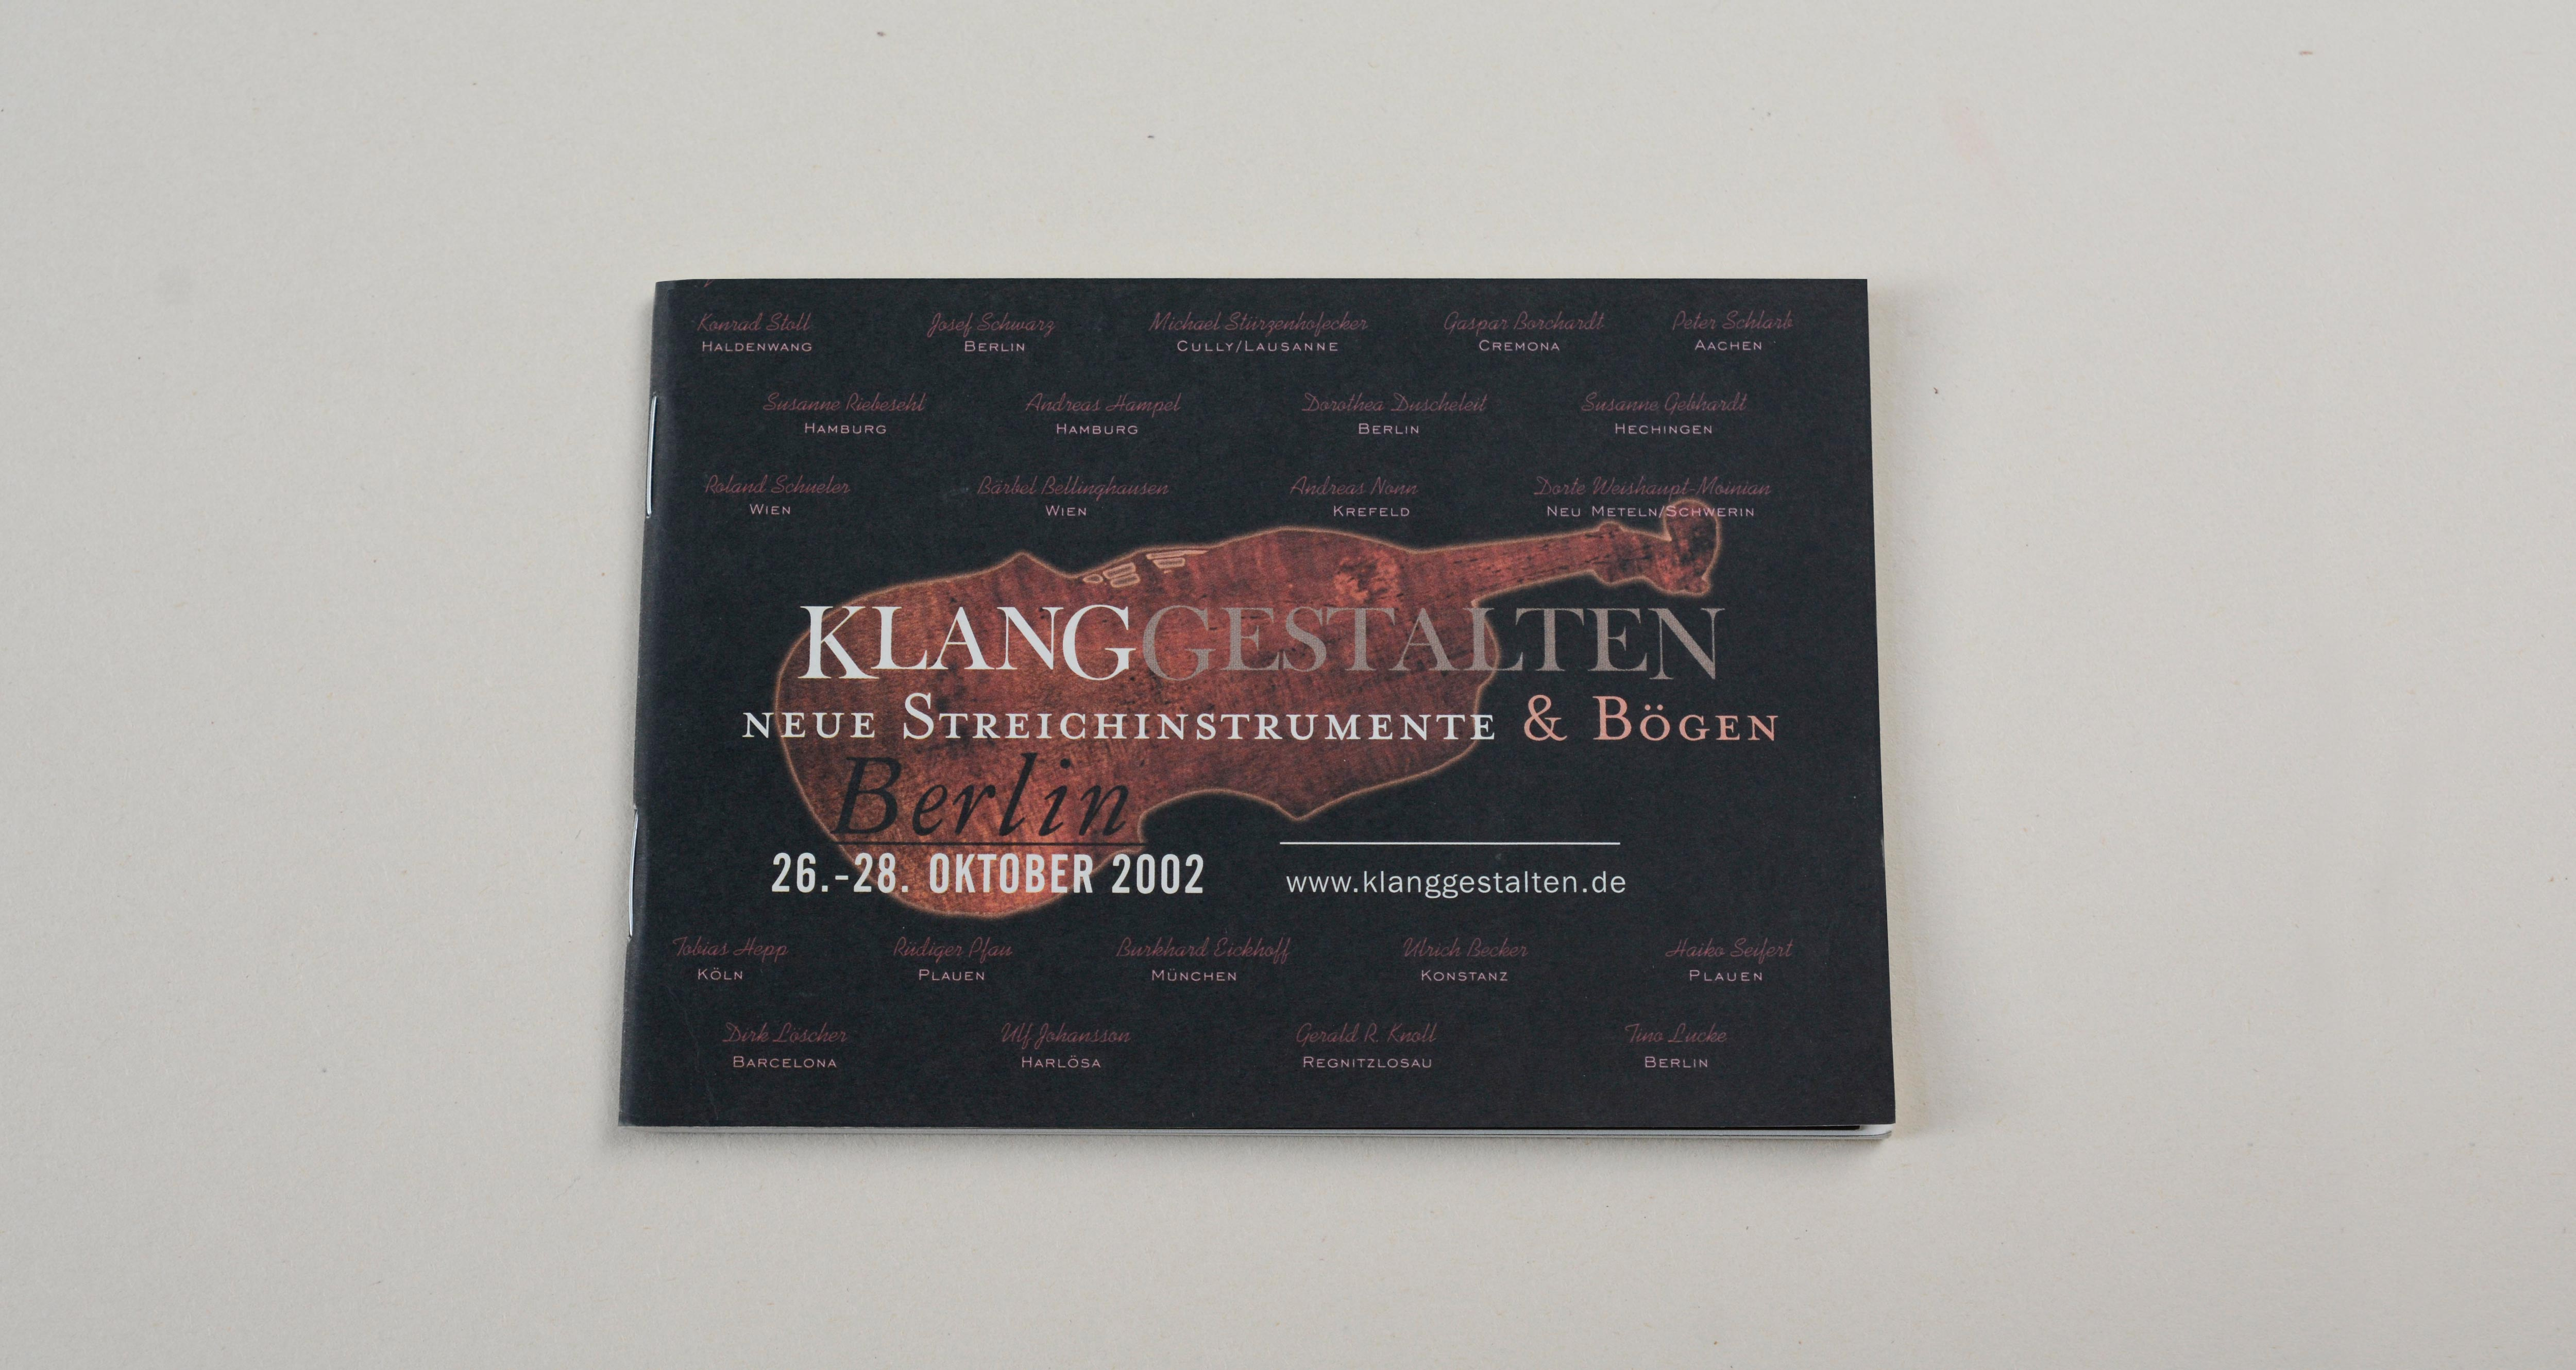 Cover catalogue landscape format. Black background. Large silhouette of violin in the middle. Large logo/title and line of text overlayed. Several signatures overlayed on entire cover.